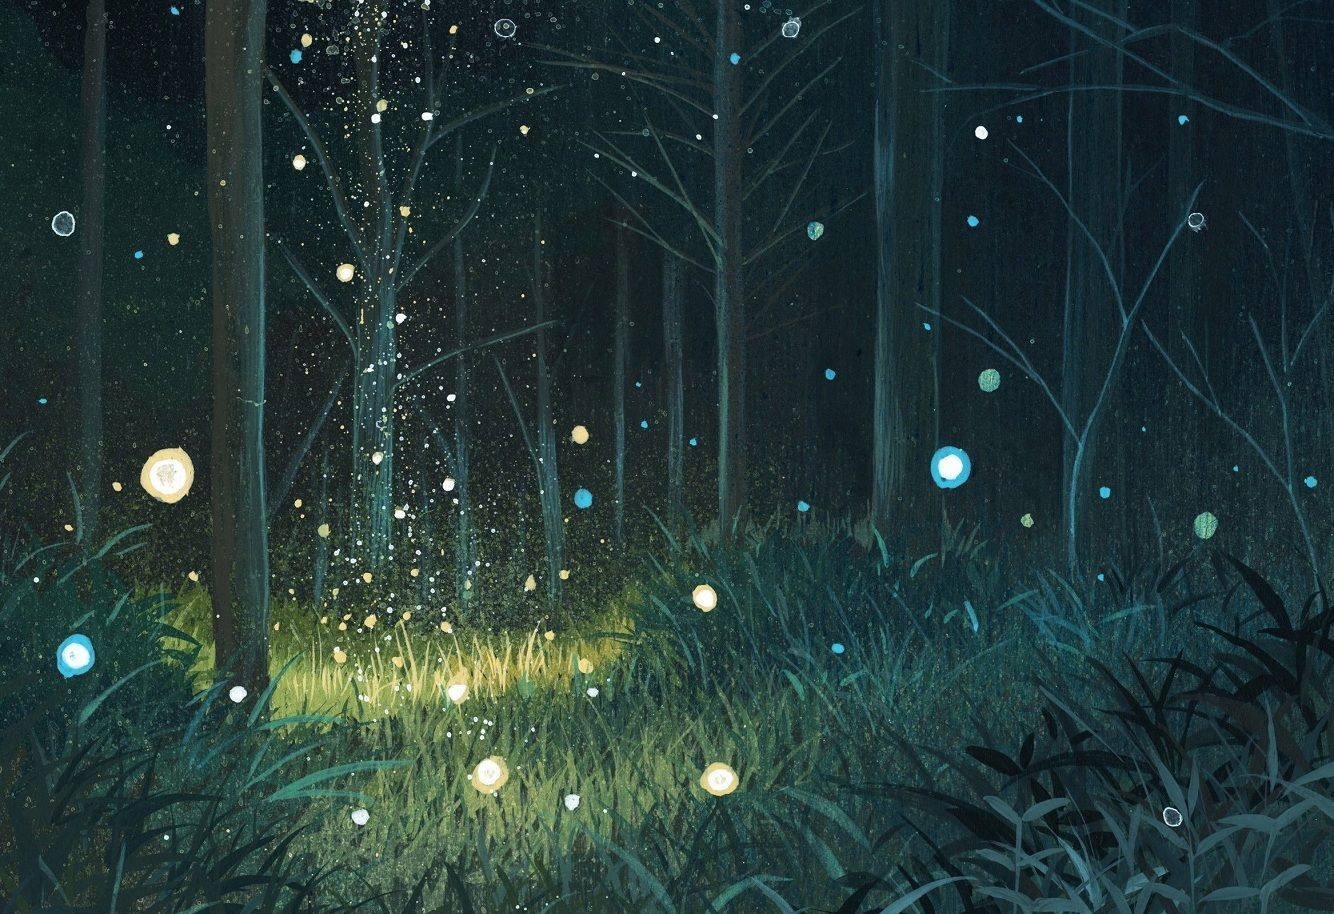 45 Night Time Forest Wallpapers Download At Wallpaperbro Night Forest Forest Wallpaper Night Landscape